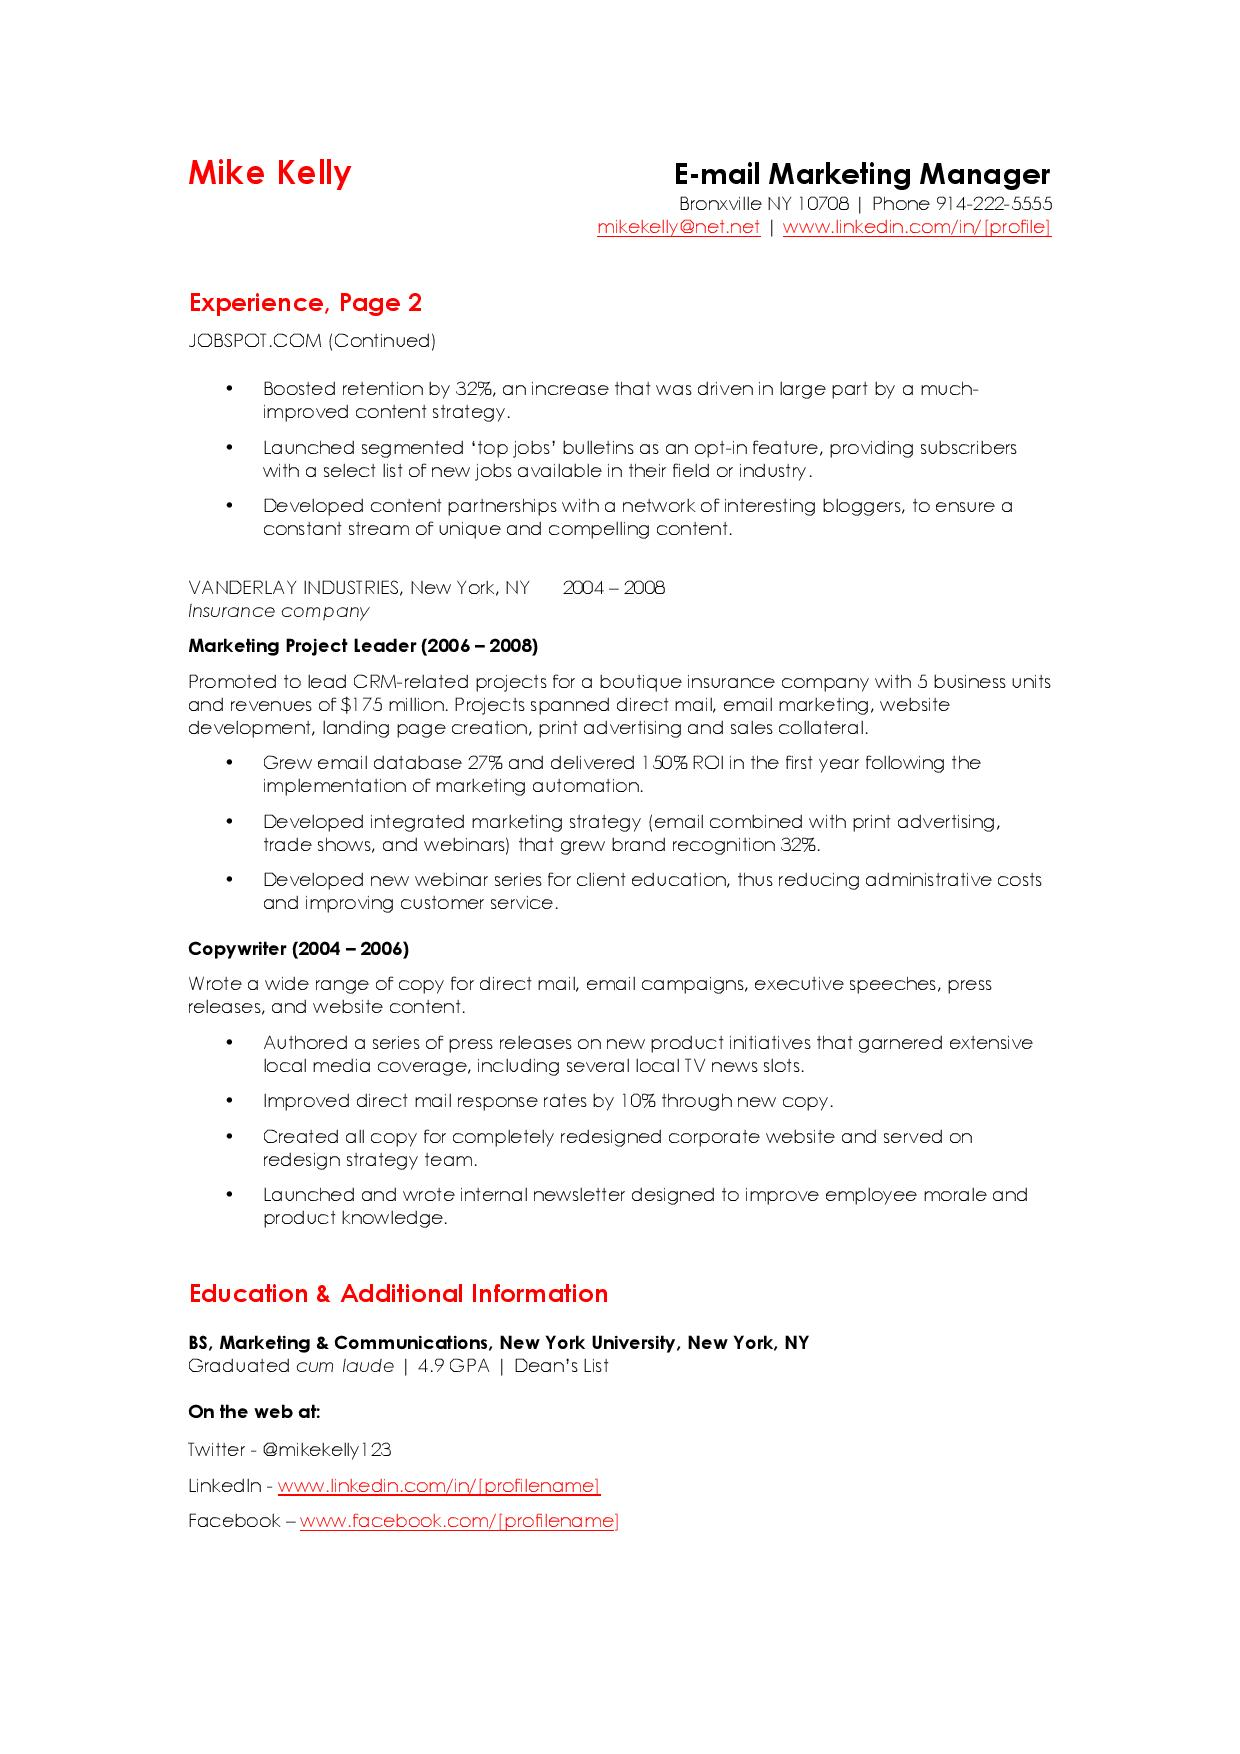 to write an email marketing resume sample that hrs choose listing webinars on manager Resume Listing Webinars On Resume